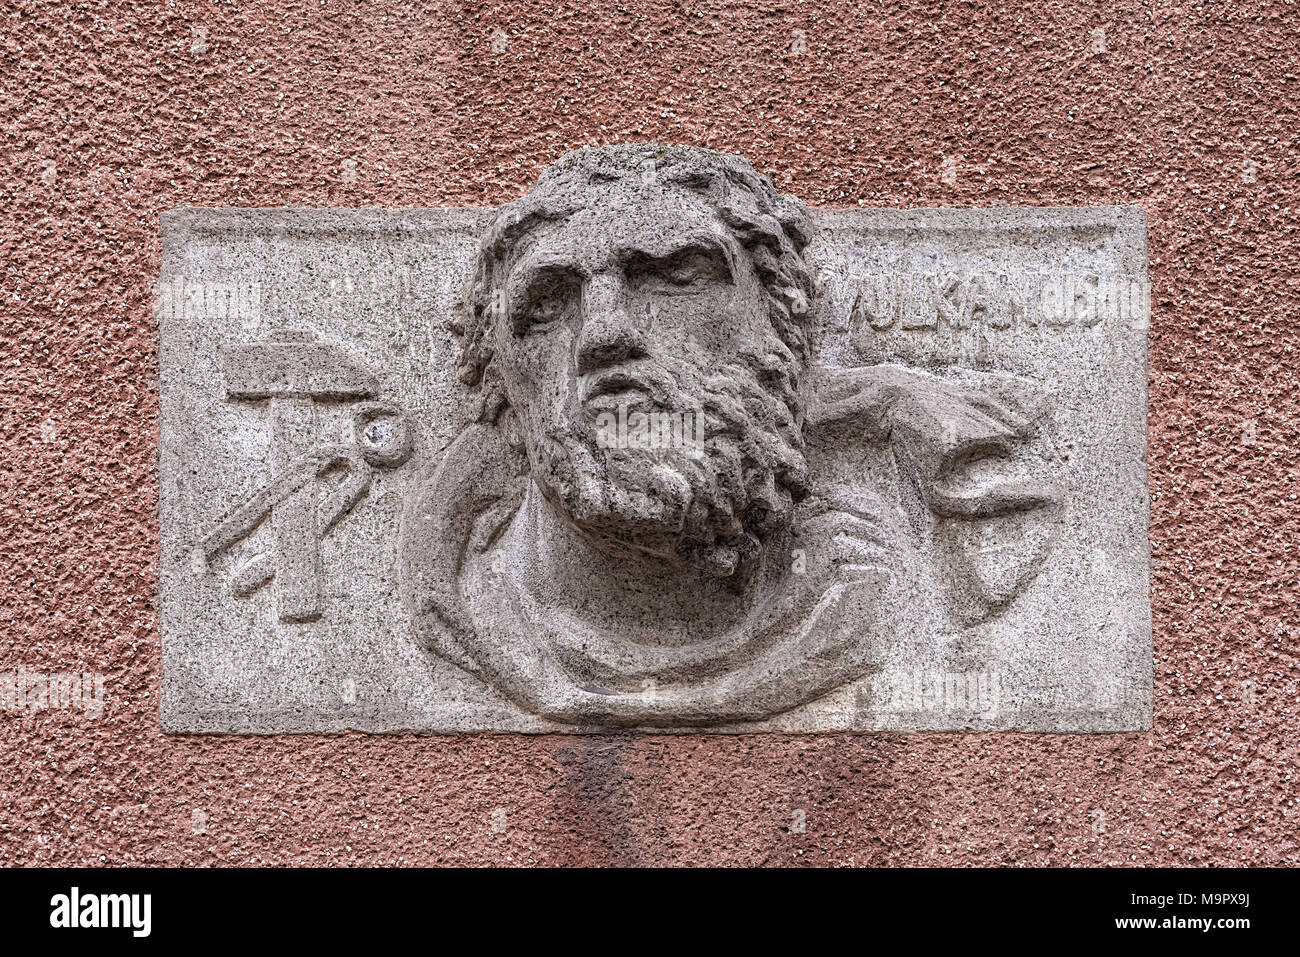 Relief of Vulcanus, roman god of fire and forge on a public building, Erlangen, Middle Franconia, Bavaria, Germany - Stock Image